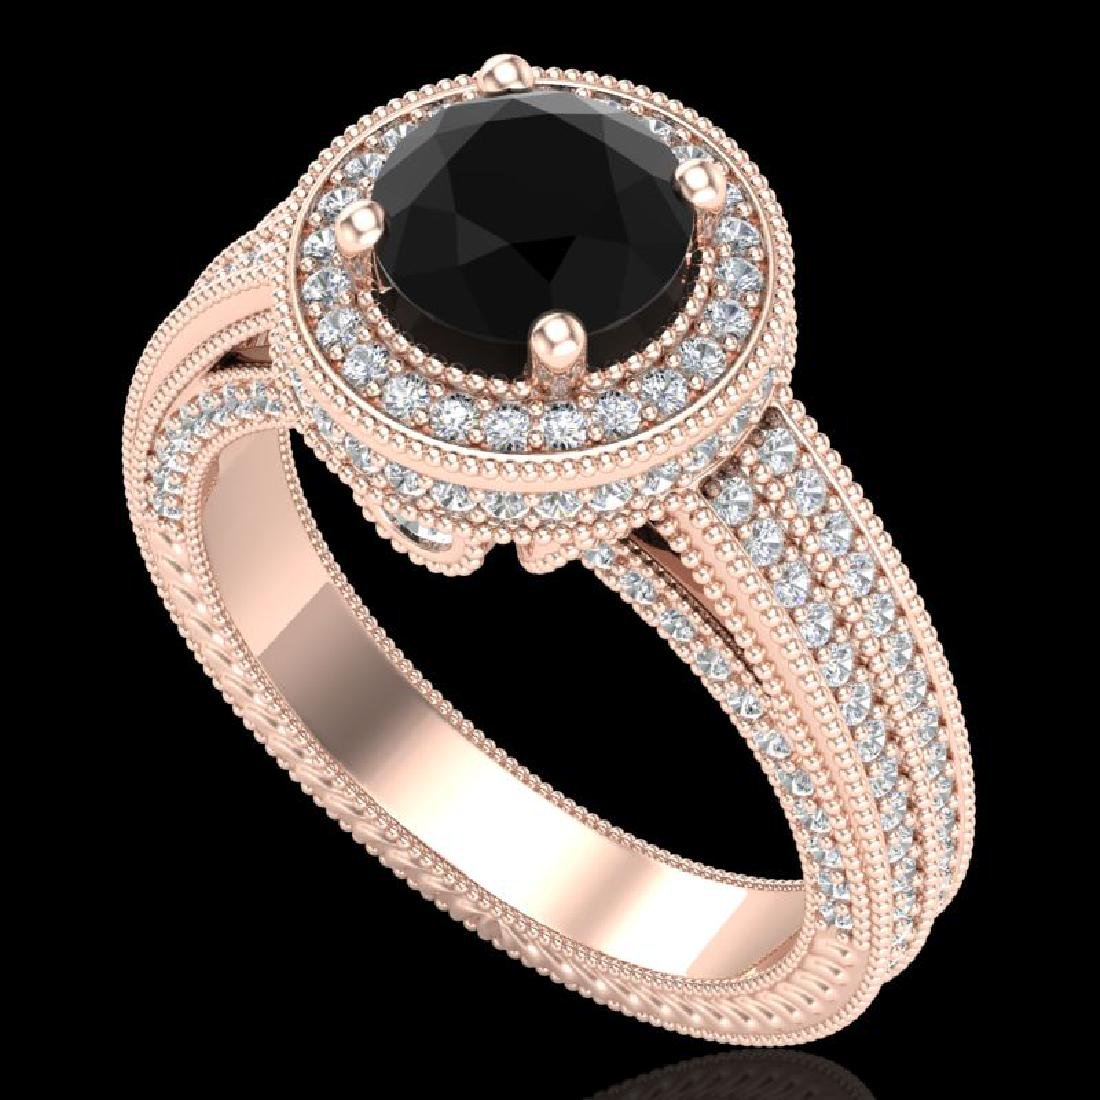 2.8 CTW Fancy Black Diamond Solitaire Engagement Art